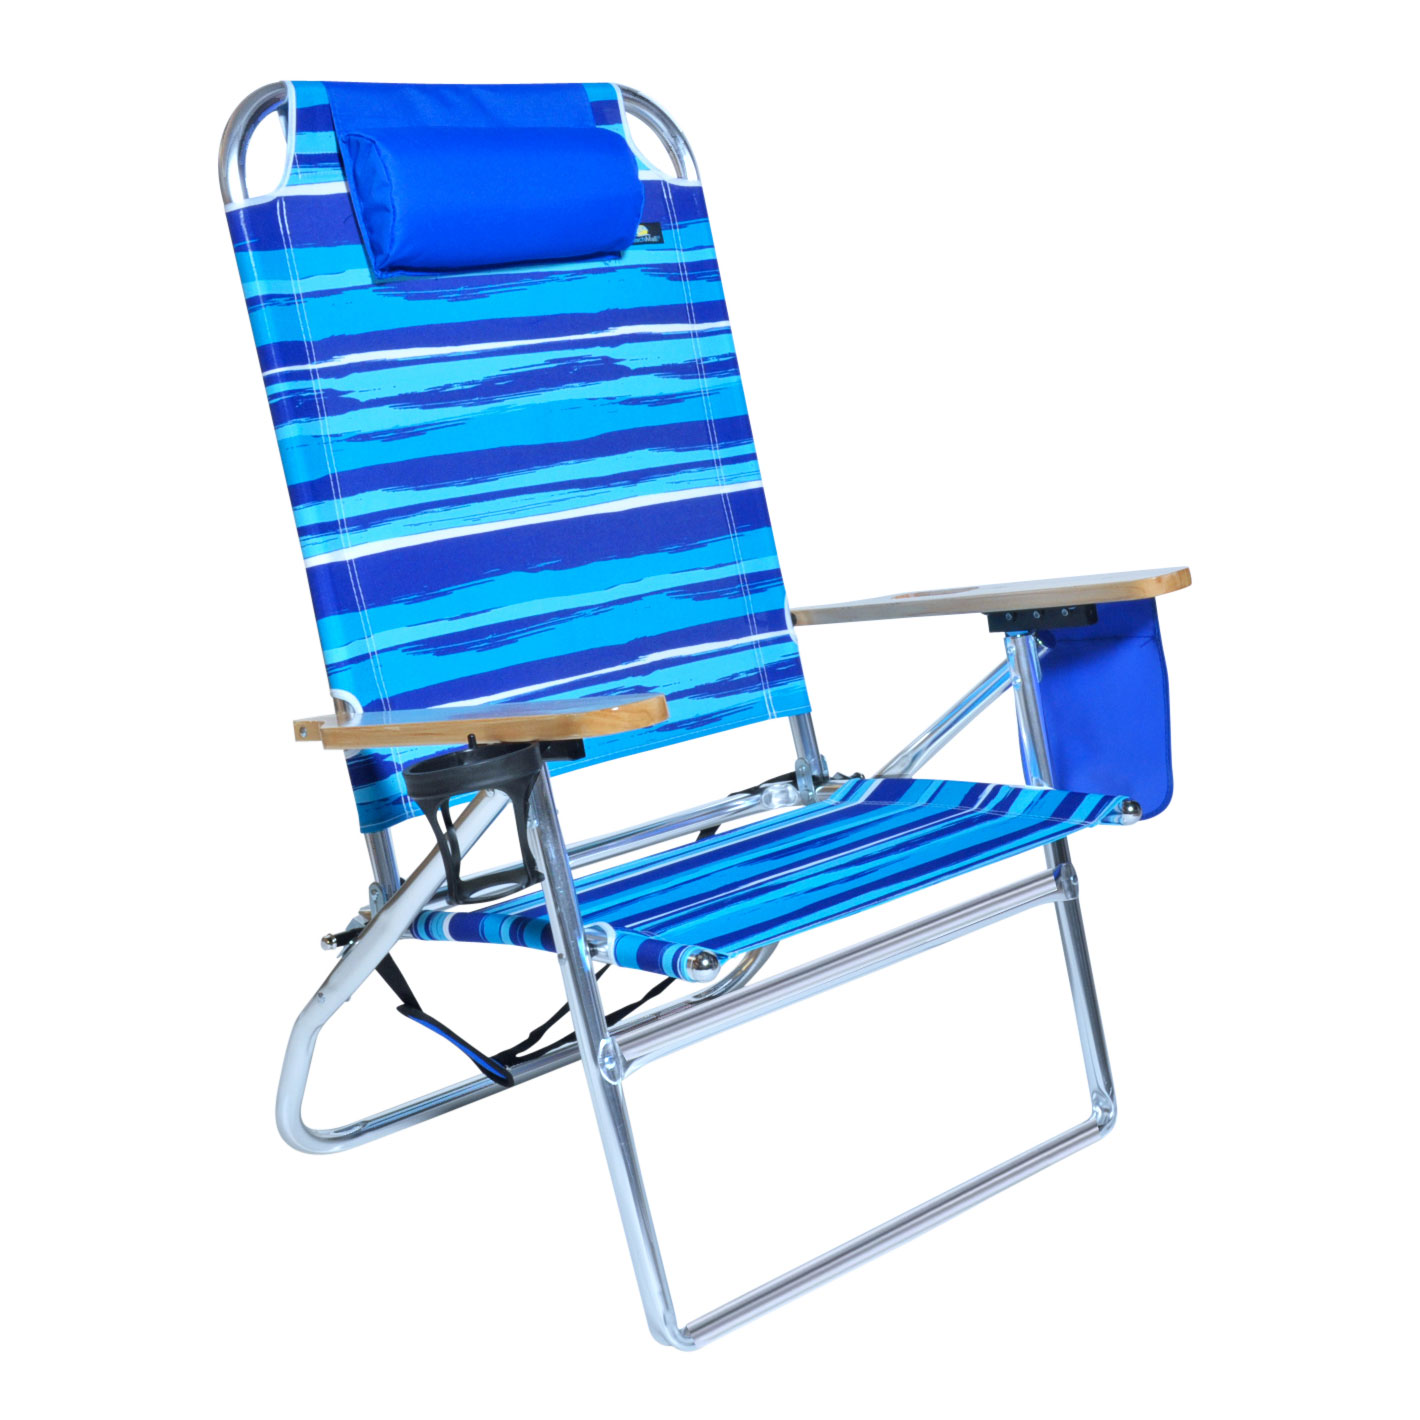 Extra Large   High Seat Heavy Duty 4 Position Beach Chair W/ Drink Holder    Walmart.com